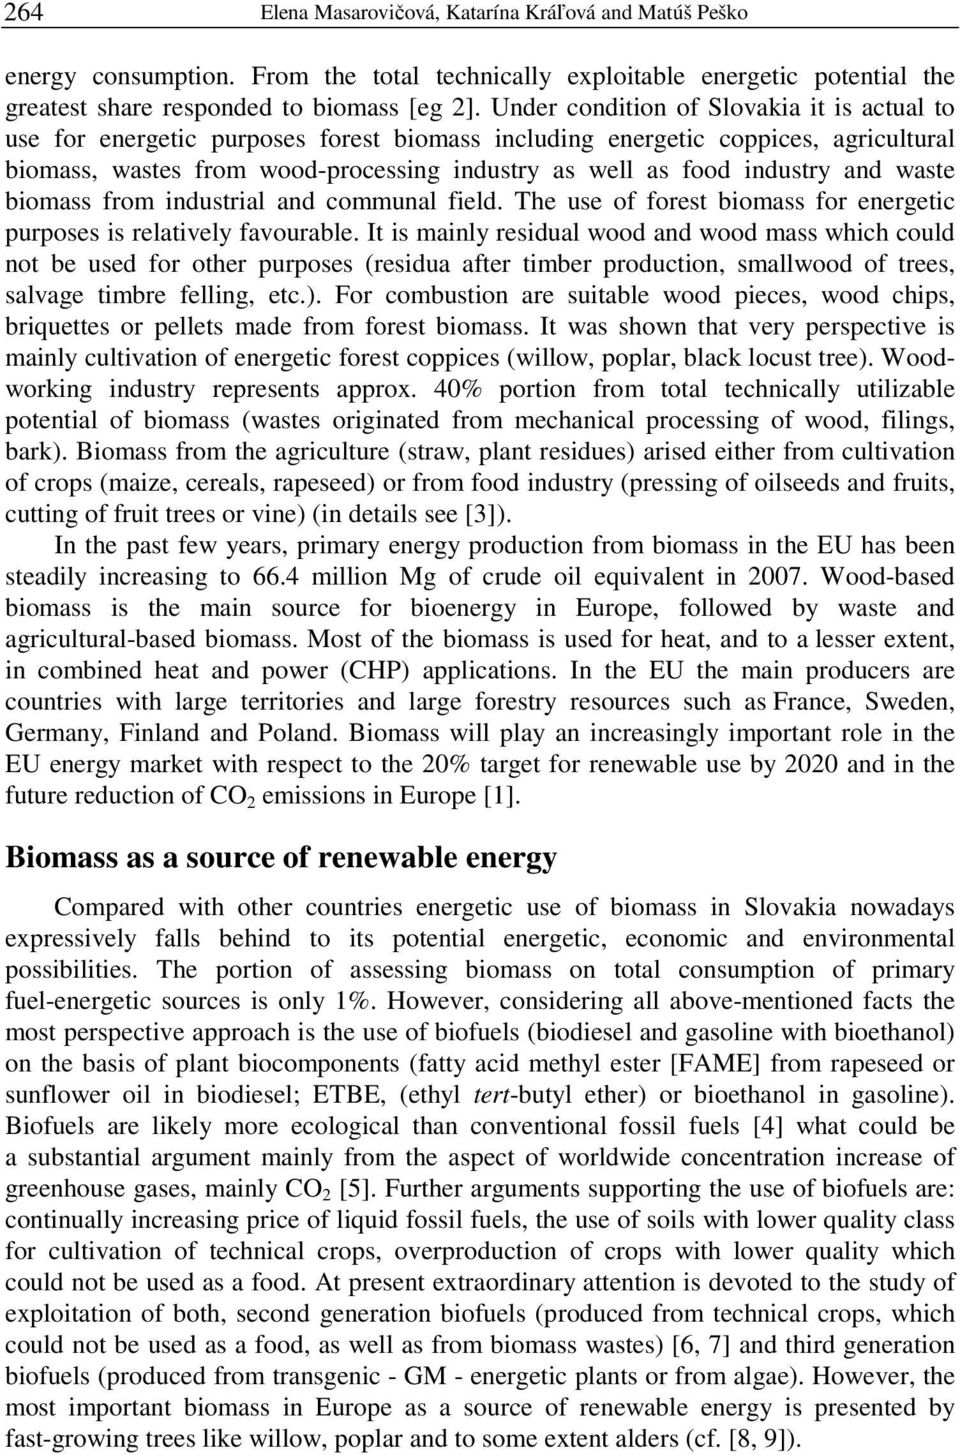 and waste biomass from industrial and communal field. The use of forest biomass for energetic purposes is relatively favourable.